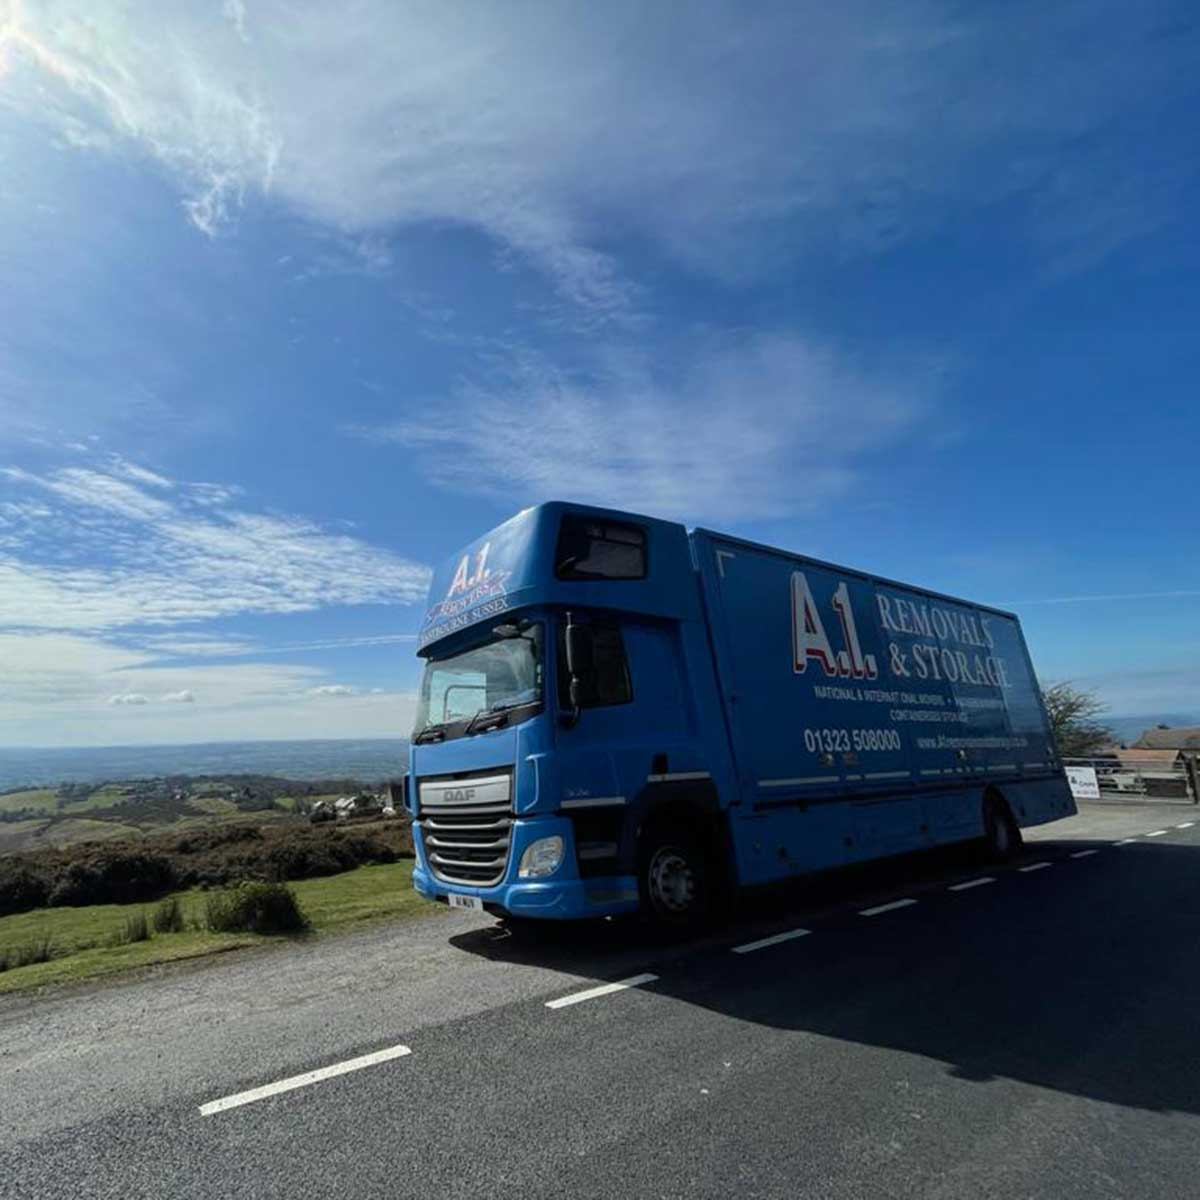 A1 Removals van in the sunshine on a coast road